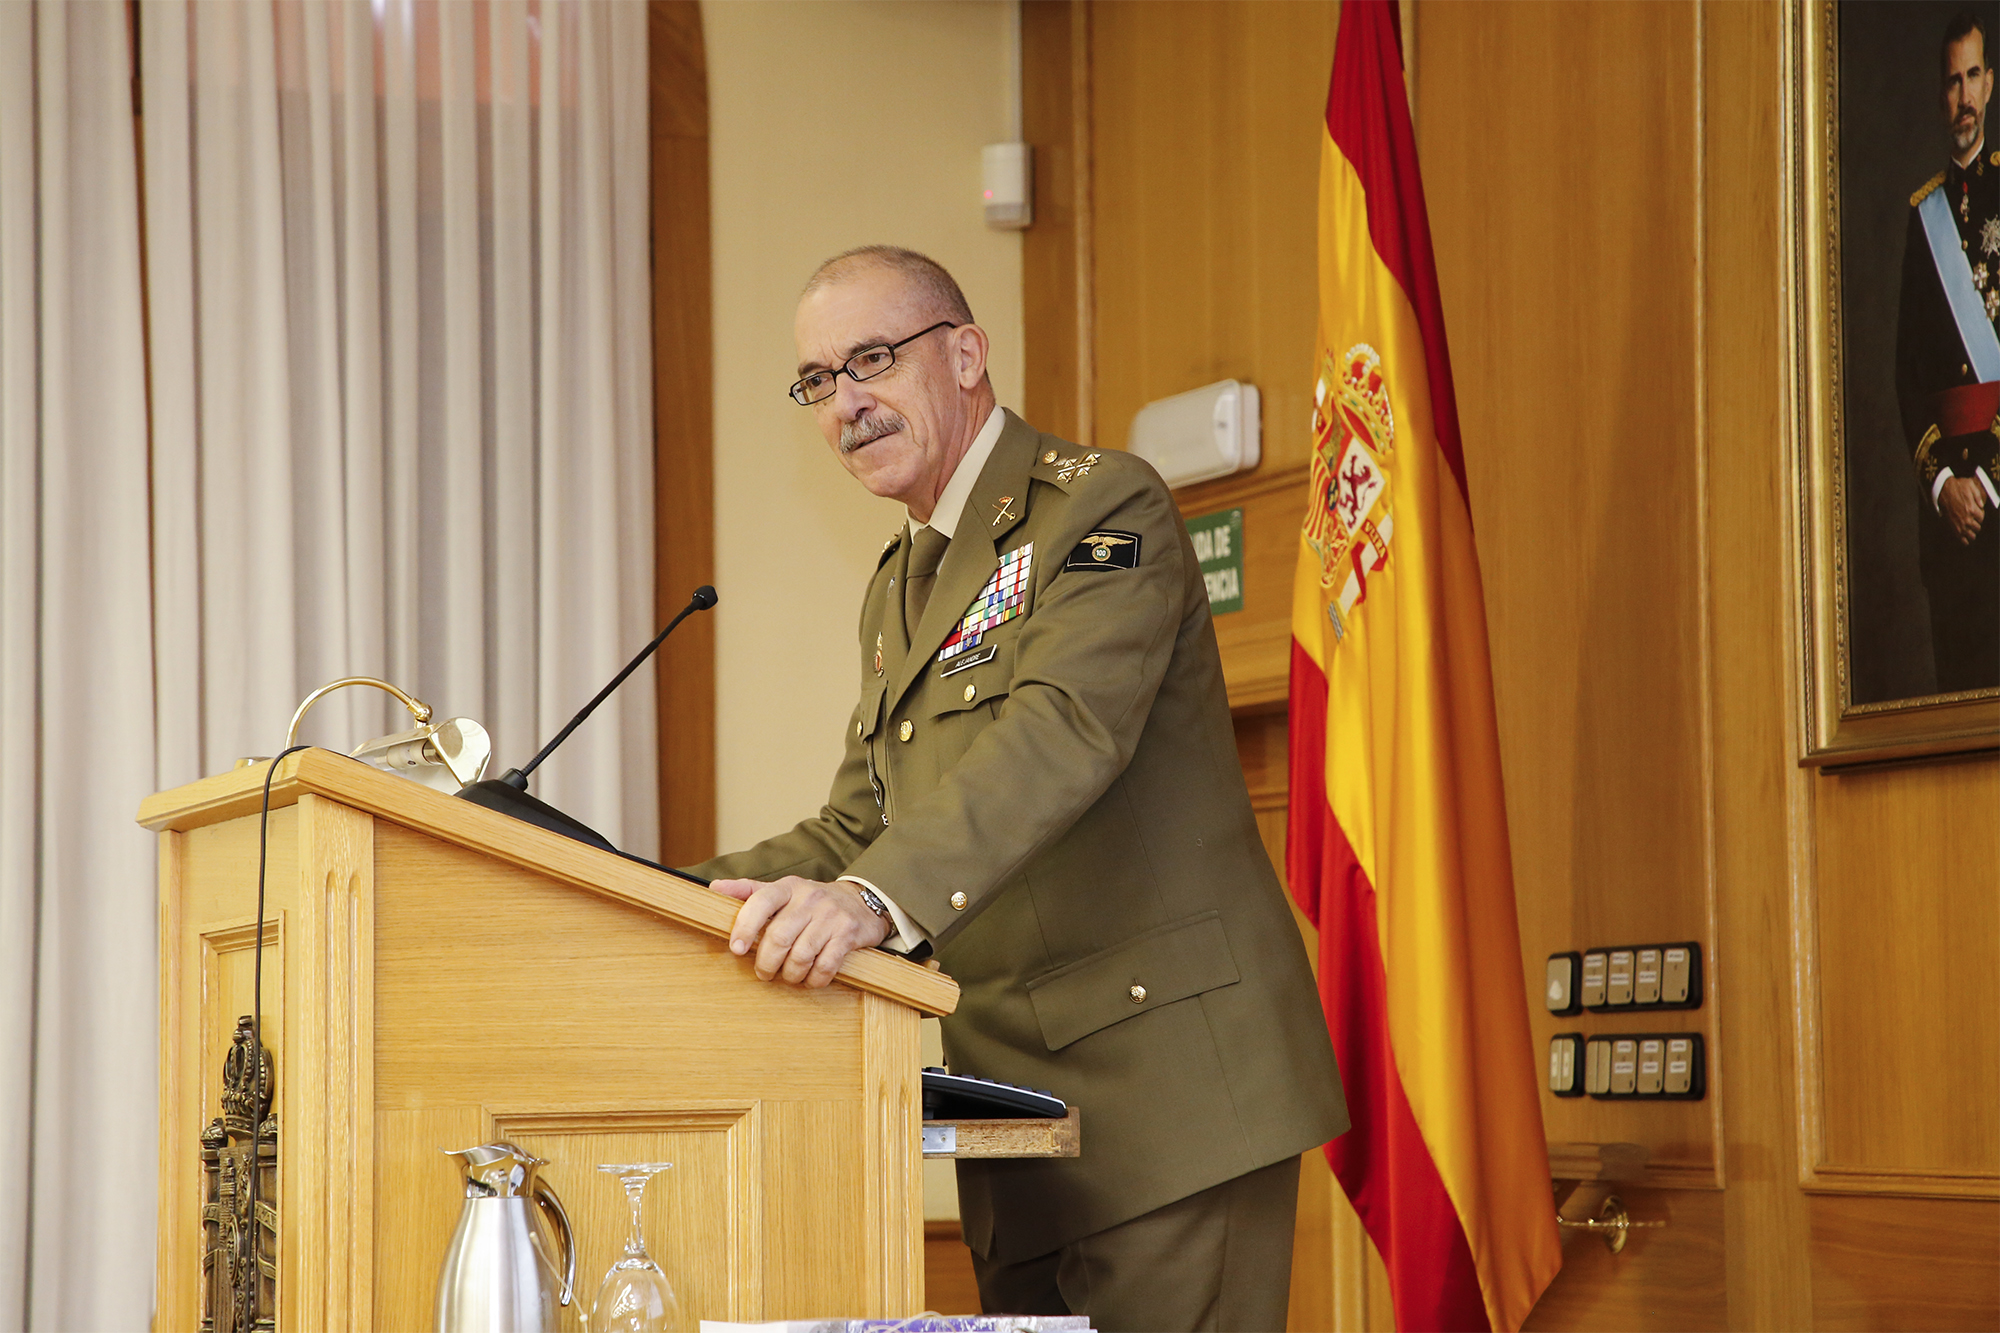 The Chief of the Defence Staff gives a conference for students taking part in the updating course of promotion to commander